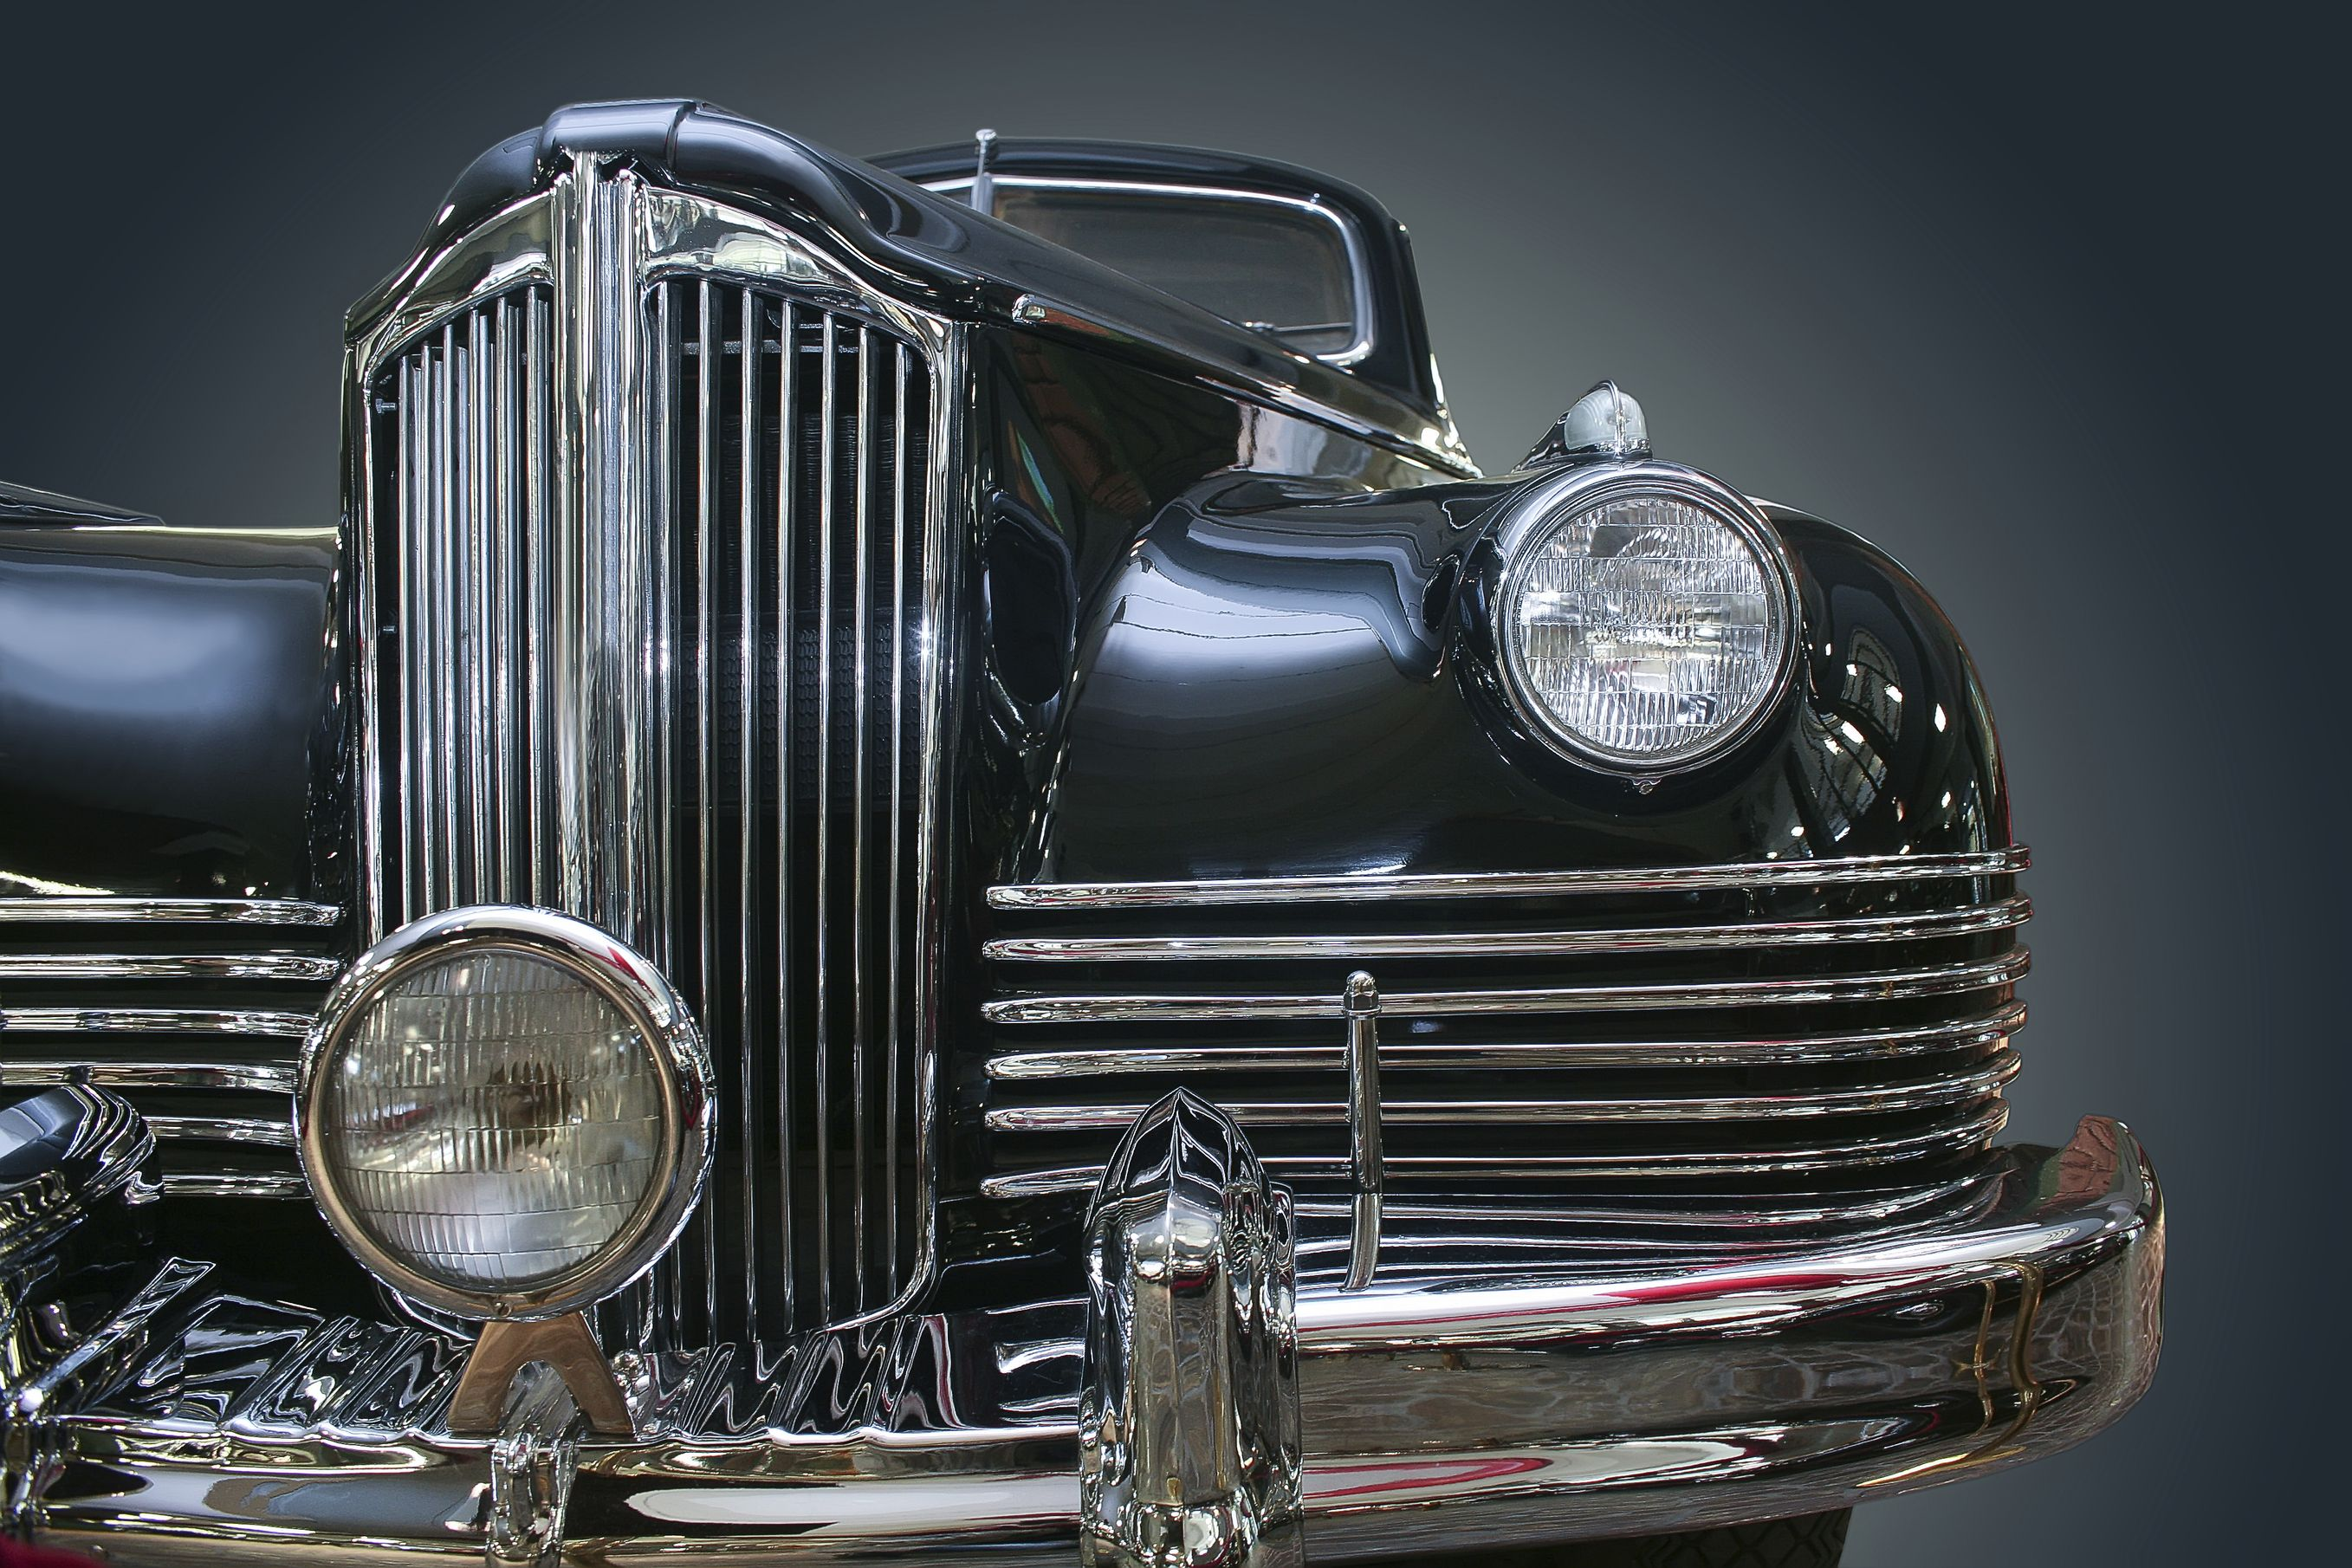 Classic cars were made with craftsmanship. Ancient